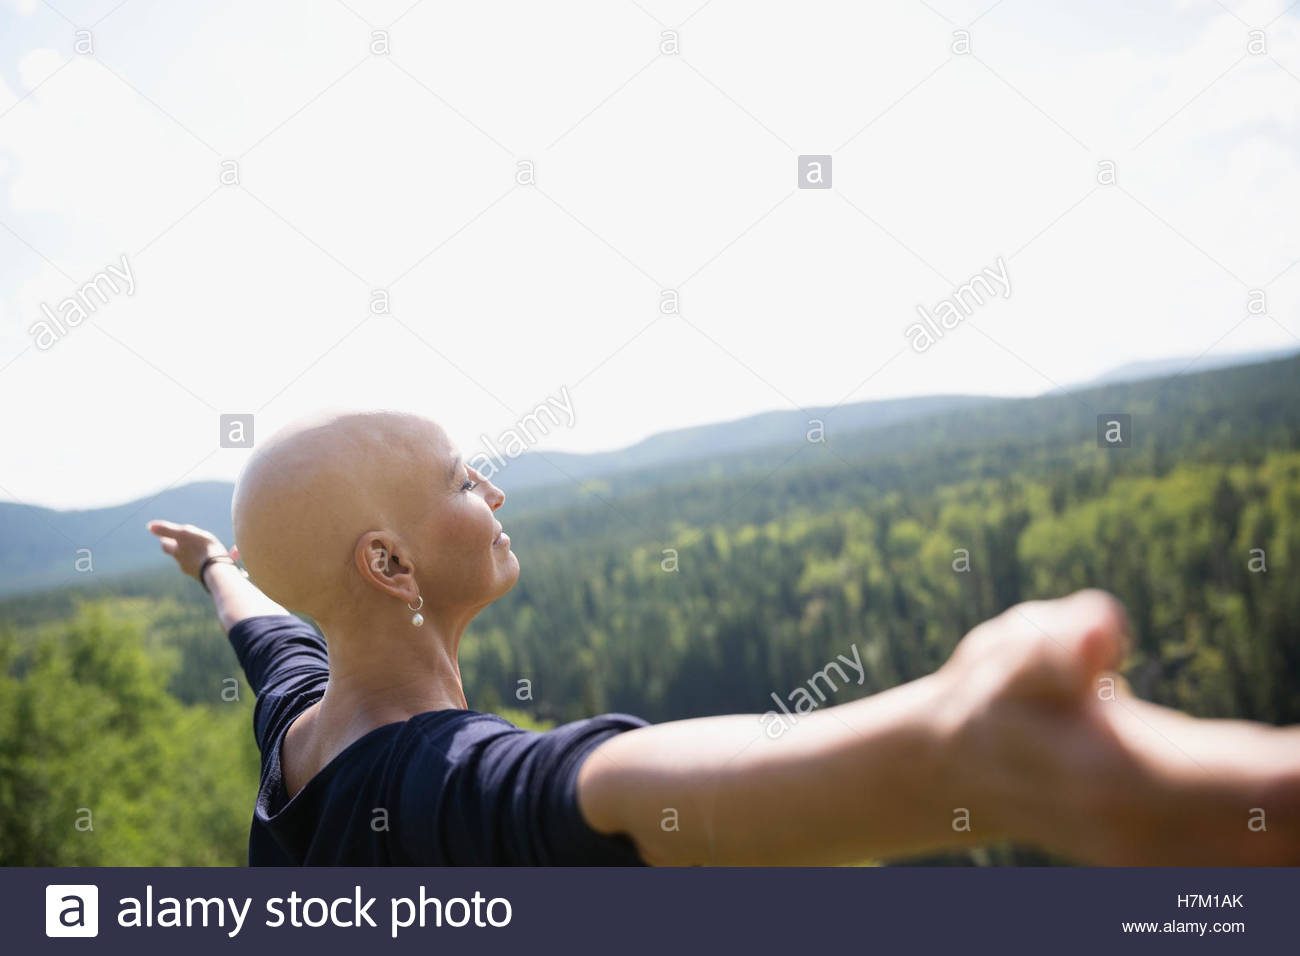 Female cancer survivor with shaved head with arms outstretched at sunny remote rural view - Stock Image